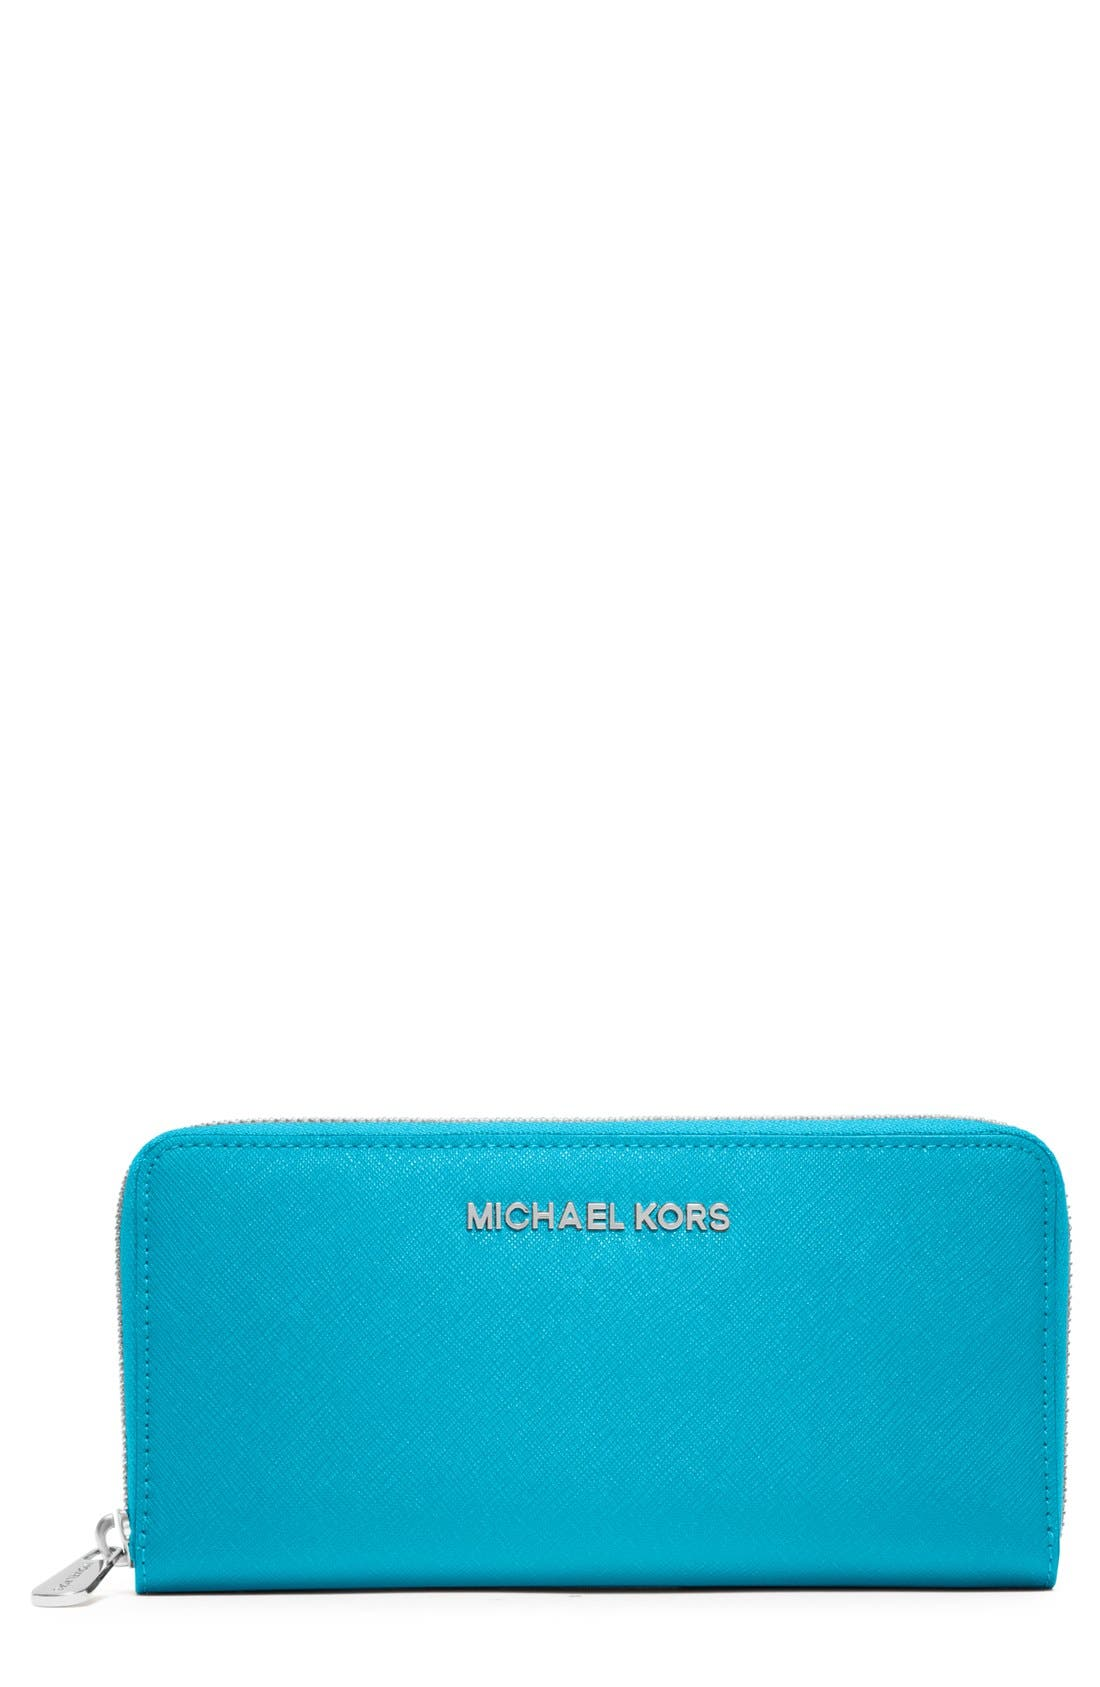 Alternate Image 1 Selected - MICHAEL Michael Kors 'Jet Set' Zip Around Continental Wallet